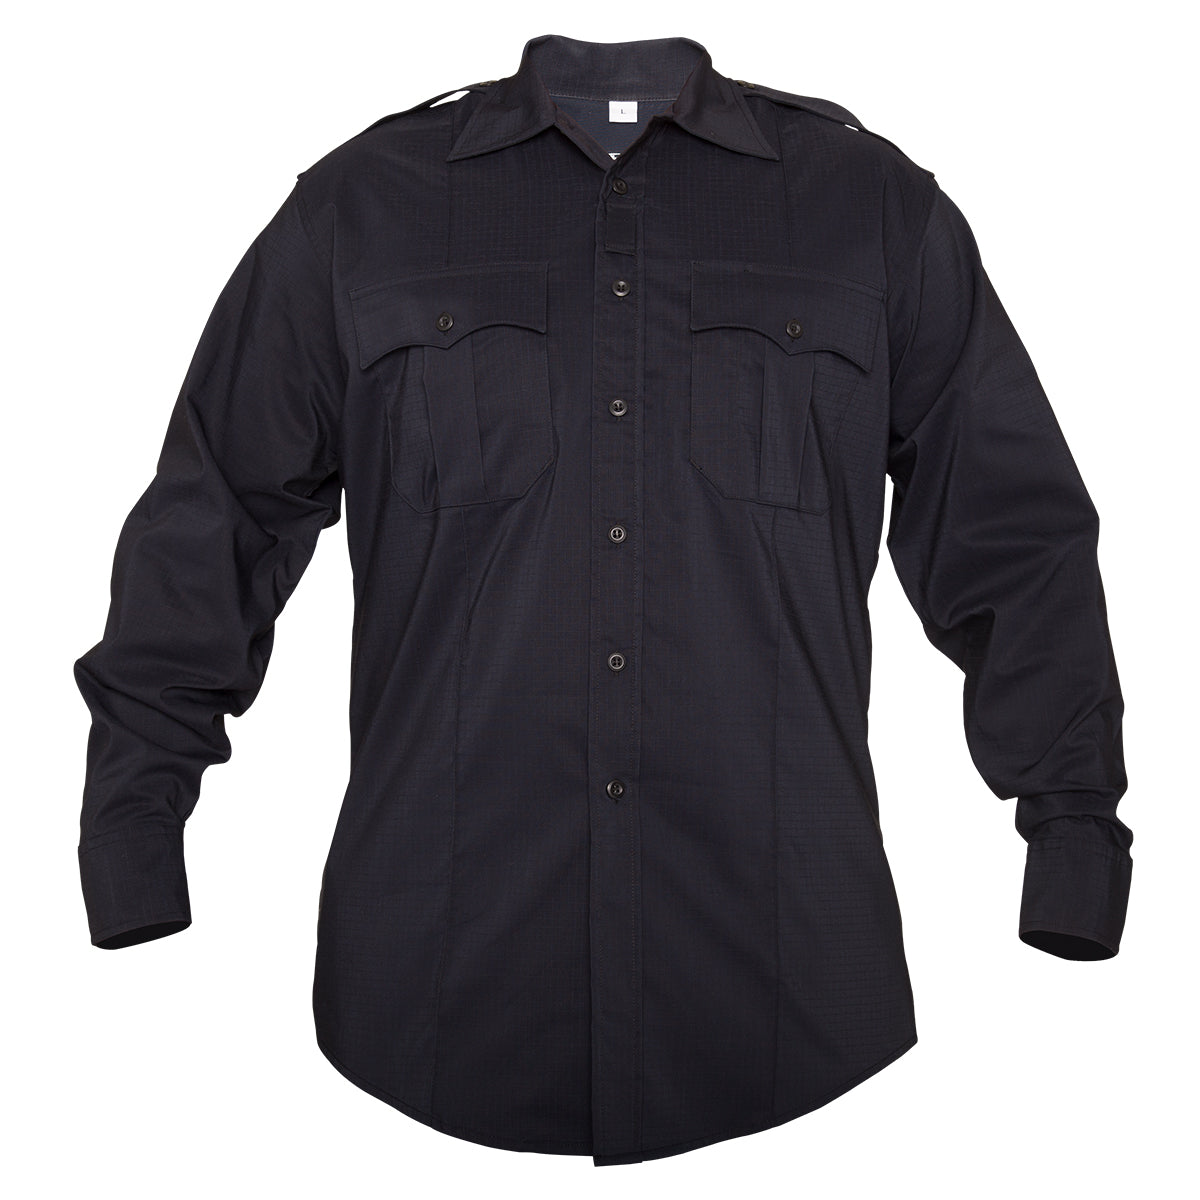 Elbeco Reflex Ripstop L/S Shirts With Zipper - Mens - red-diamond-uniform-police-supply